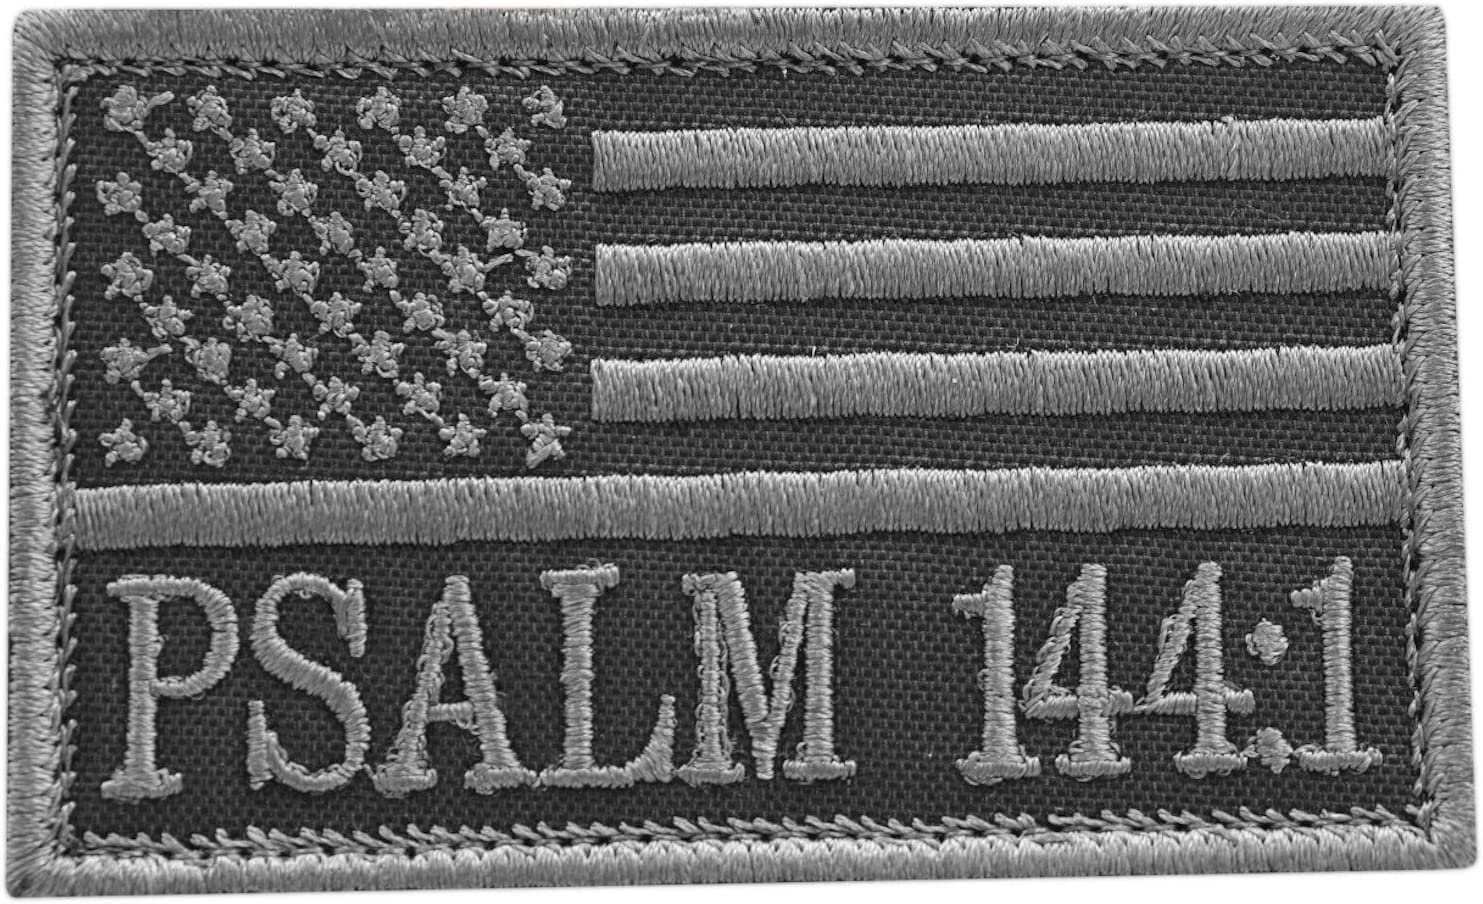 LEGEEON Subdued Psalm 144:1 2x3.25 USA Tactical Special price Christian Max 82% OFF Morale